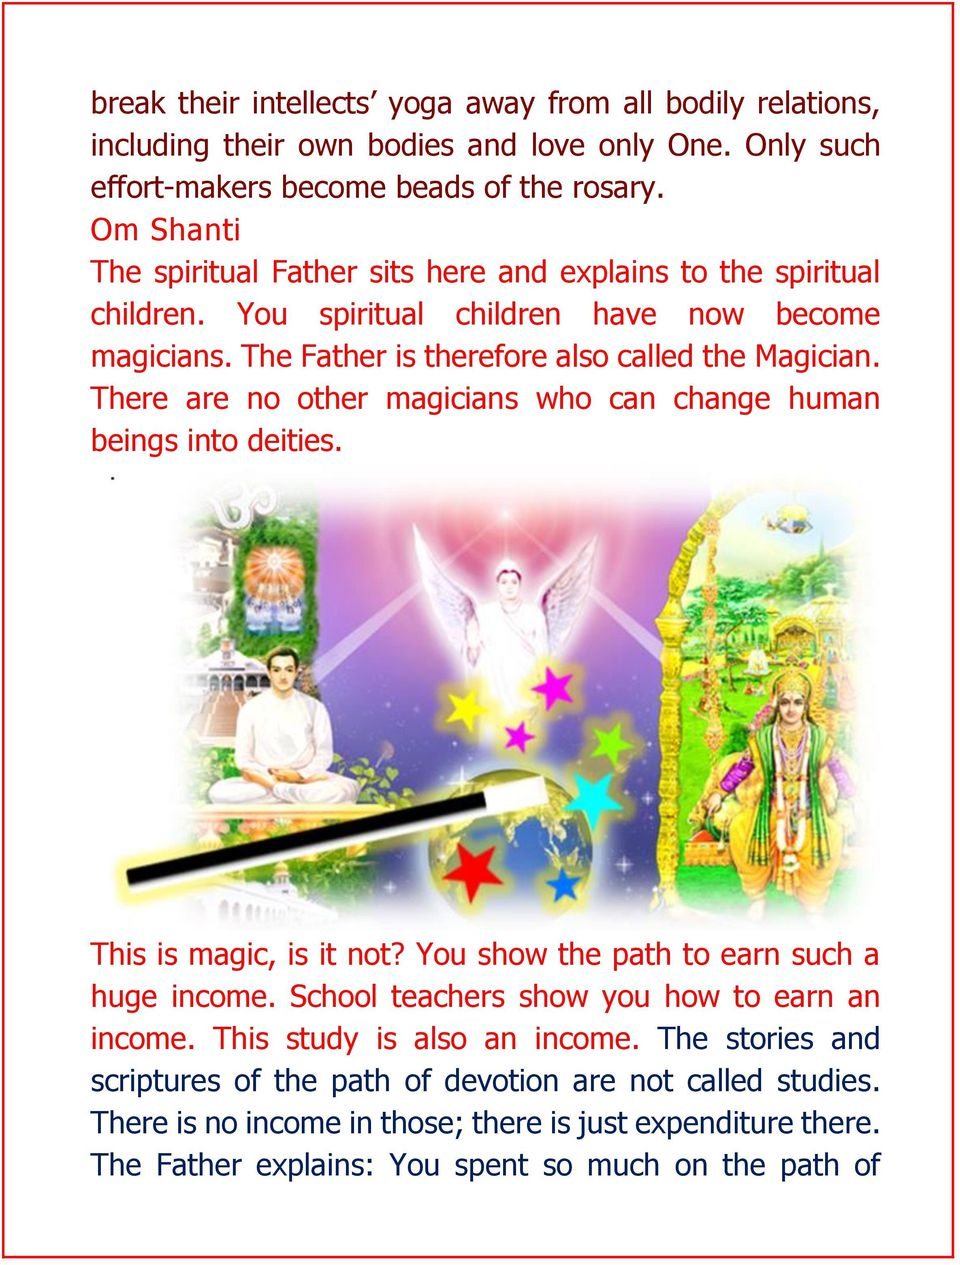 There are no other magicians who can change human beings into deities. This is magic, is it not? You show the path to earn such a huge income.